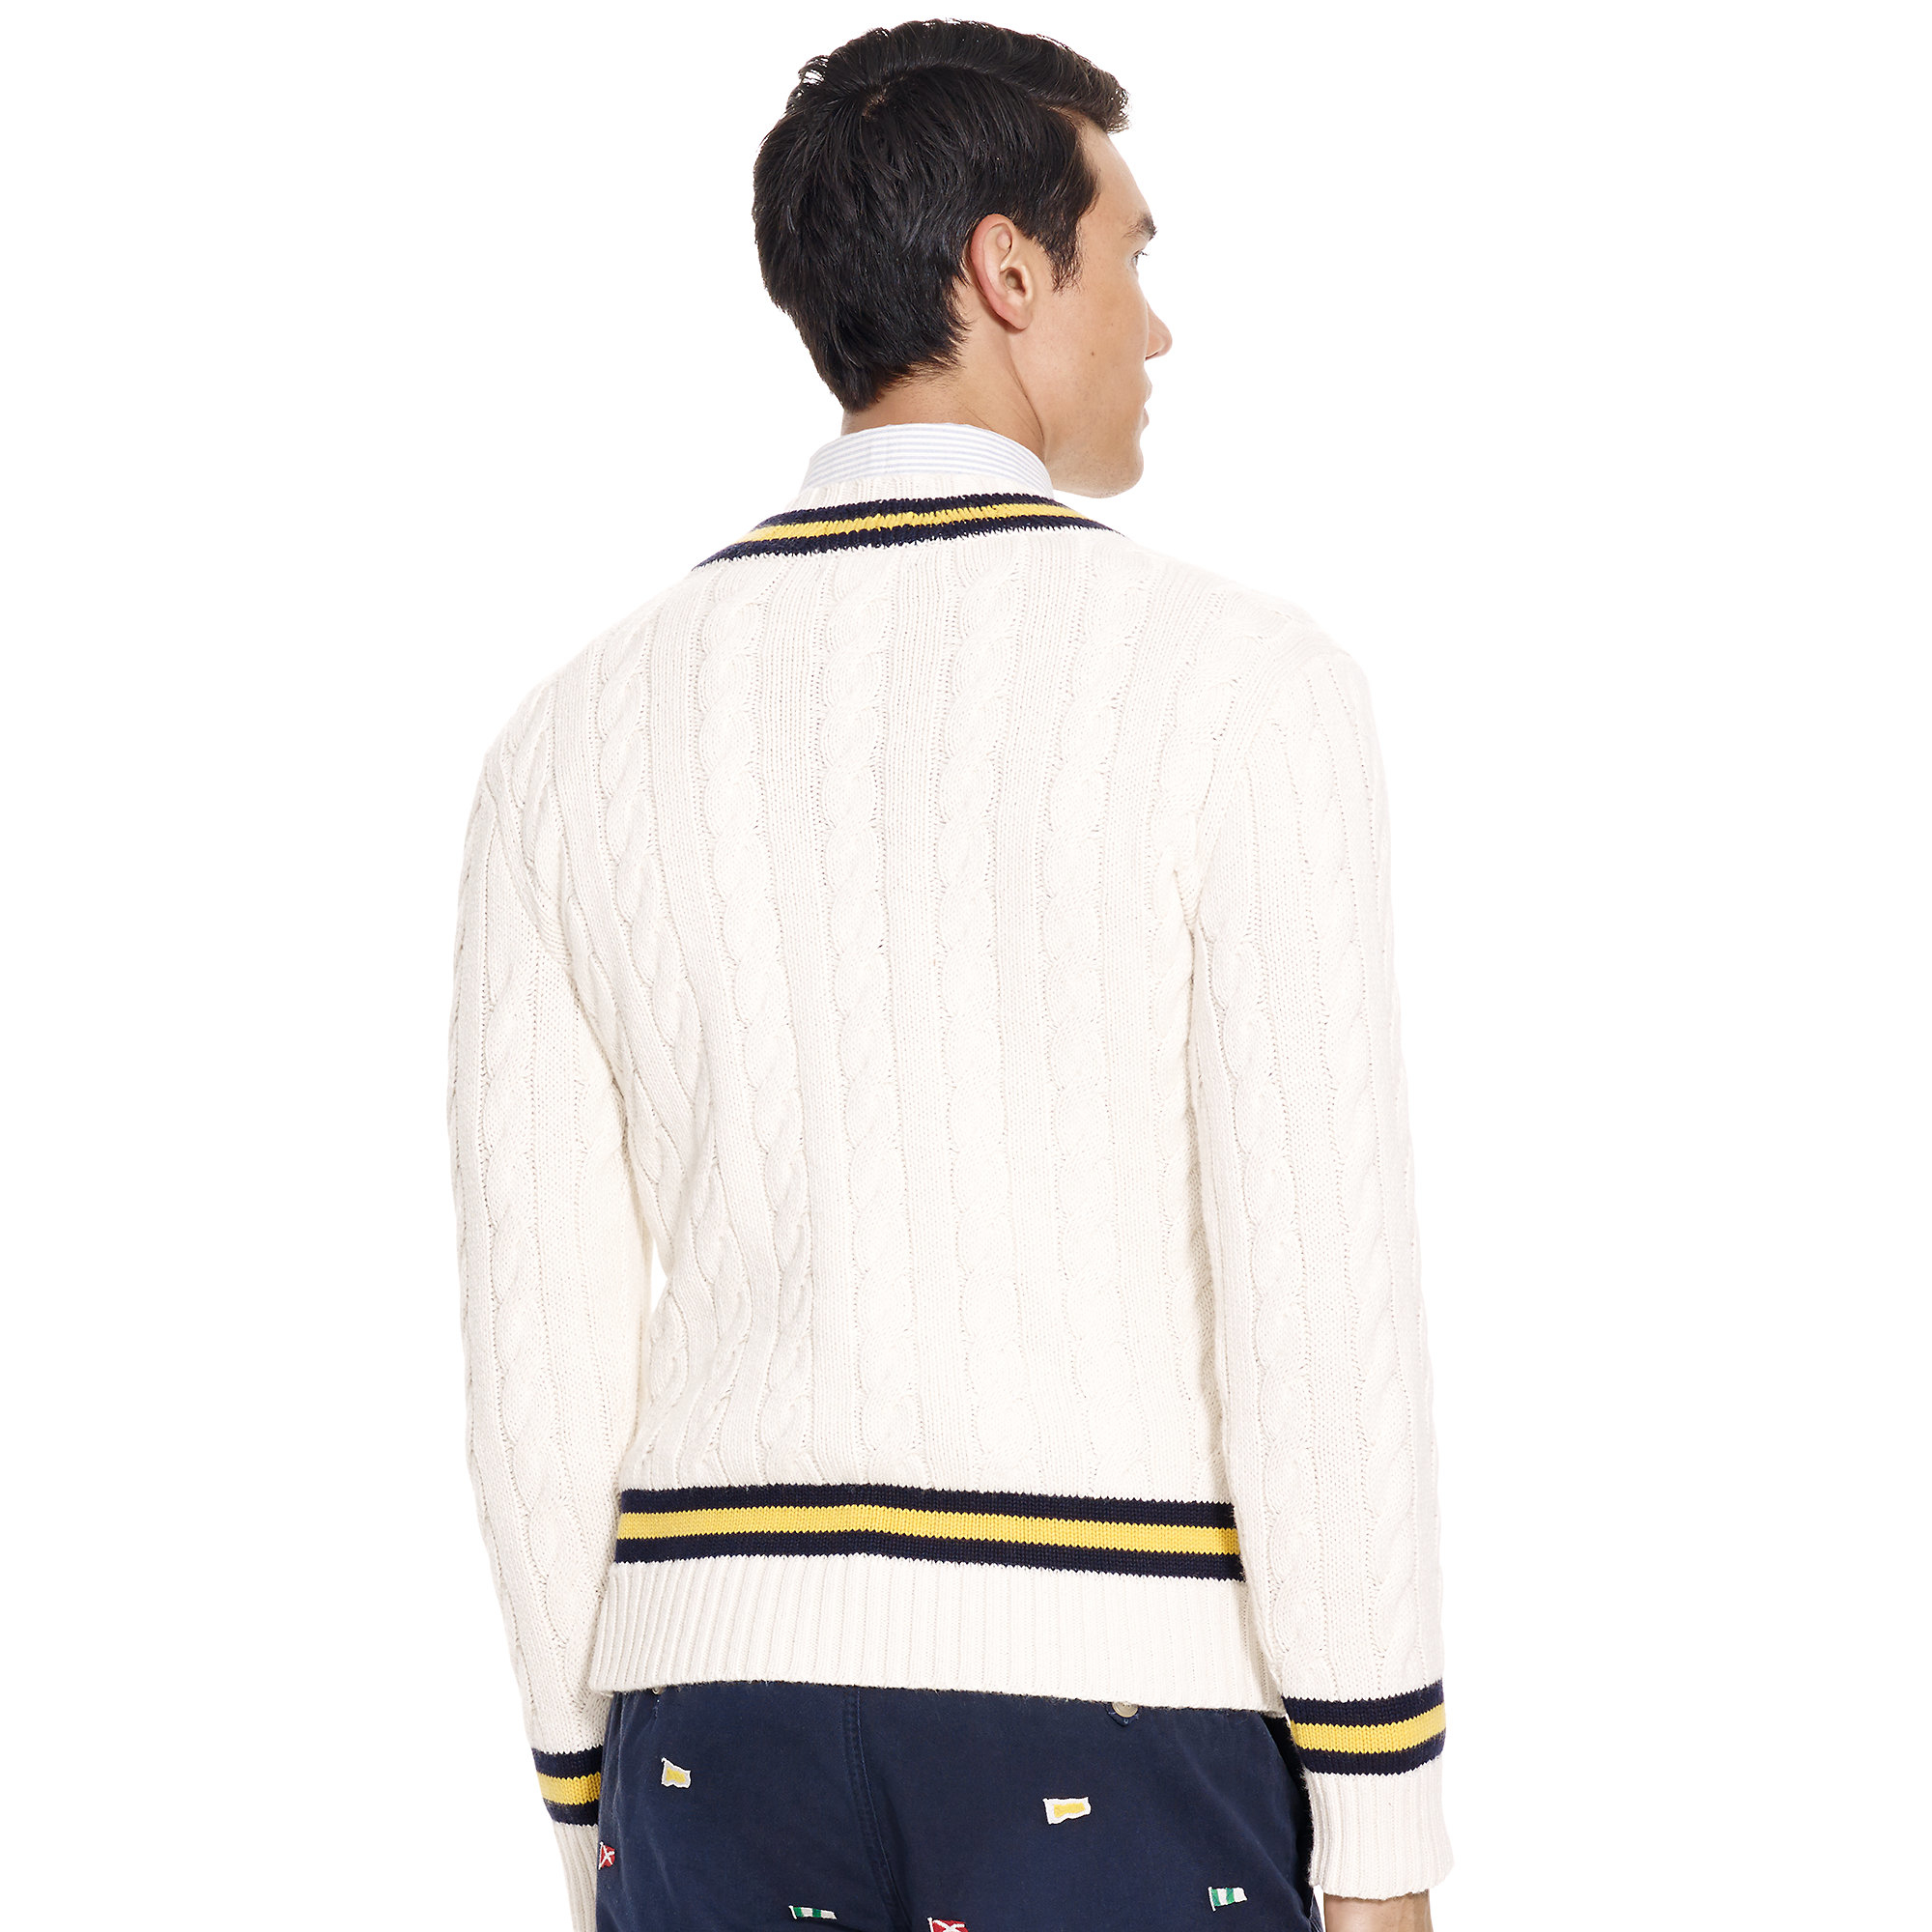 Polo ralph lauren Cotton-blend Cricket Sweater in White for Men | Lyst